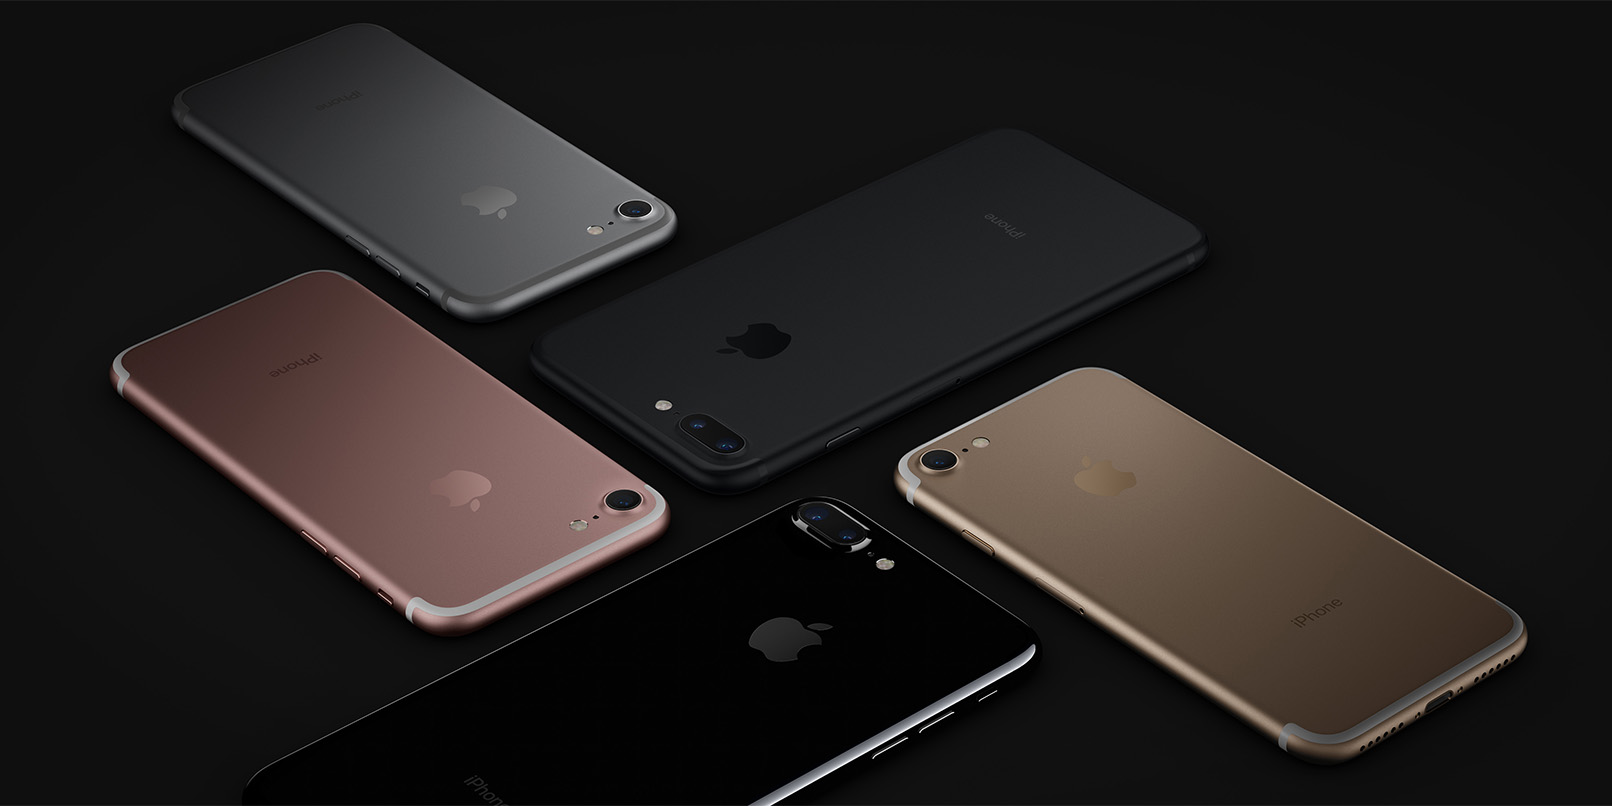 Apple's iPhone 7 Plus is outselling its smaller sibling for the first time ever